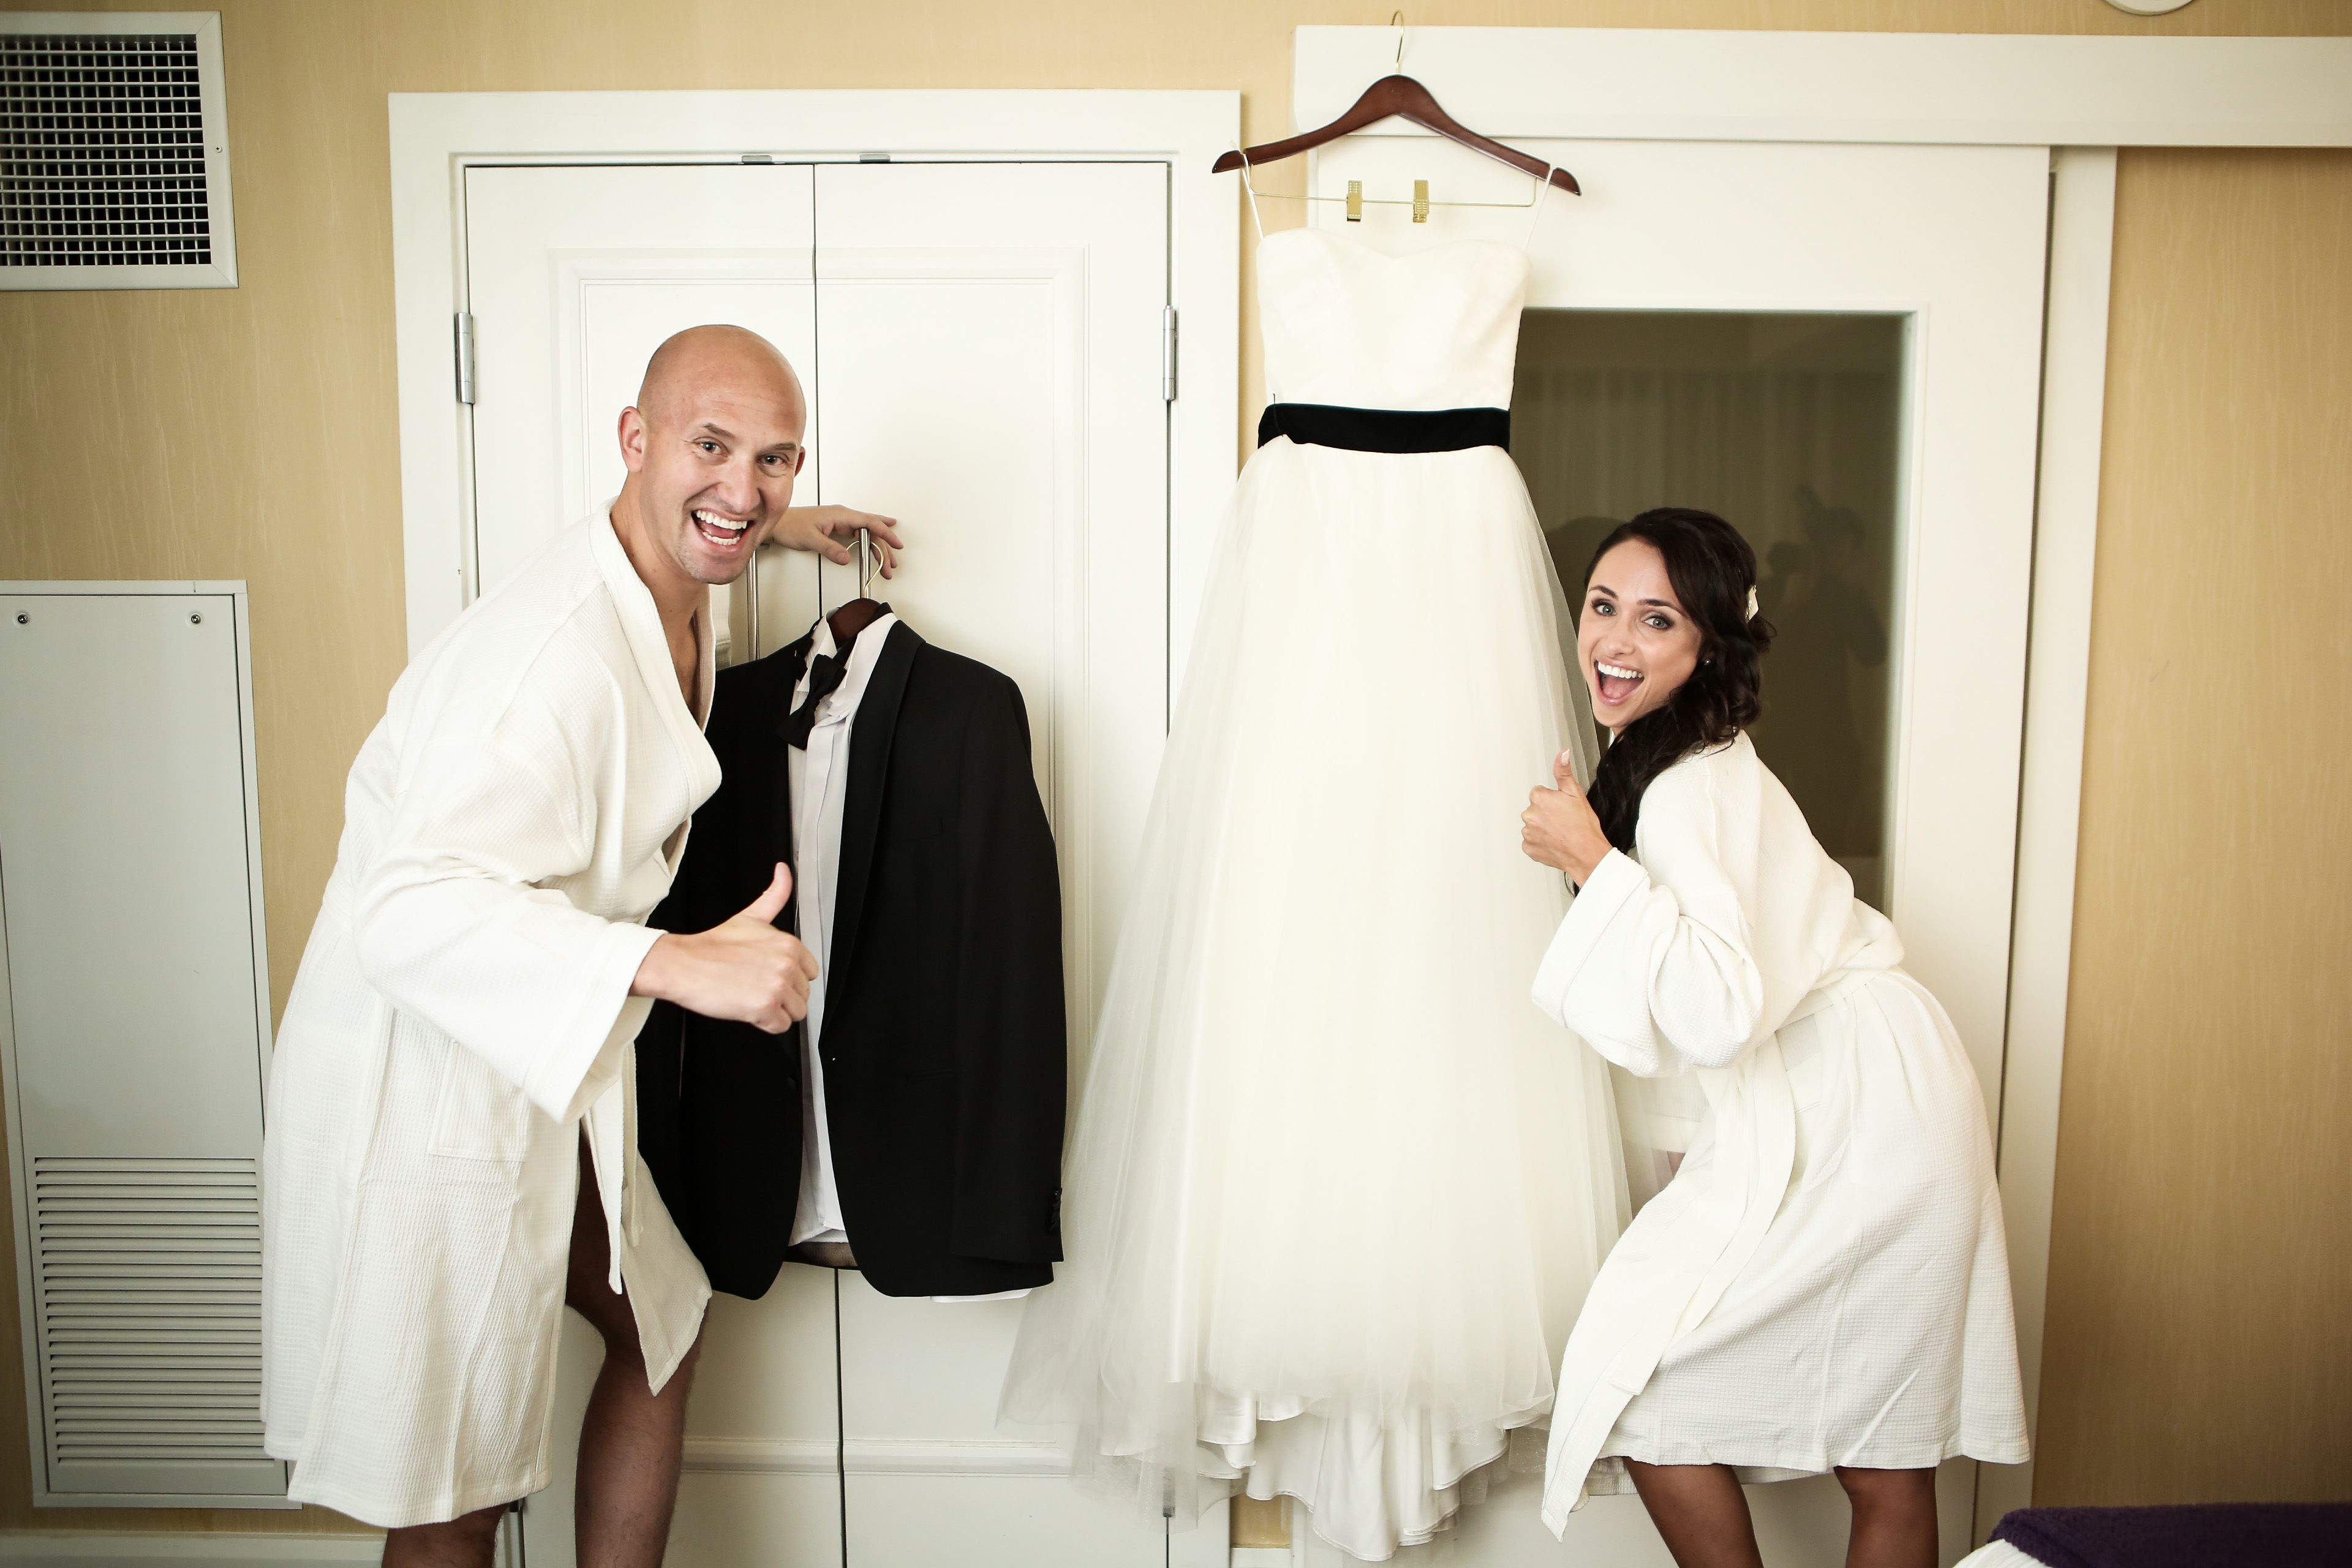 Pre Ceremony Wedding Photo Sessions Are A Great Idea To Capture All The Vegas ChapelsLas